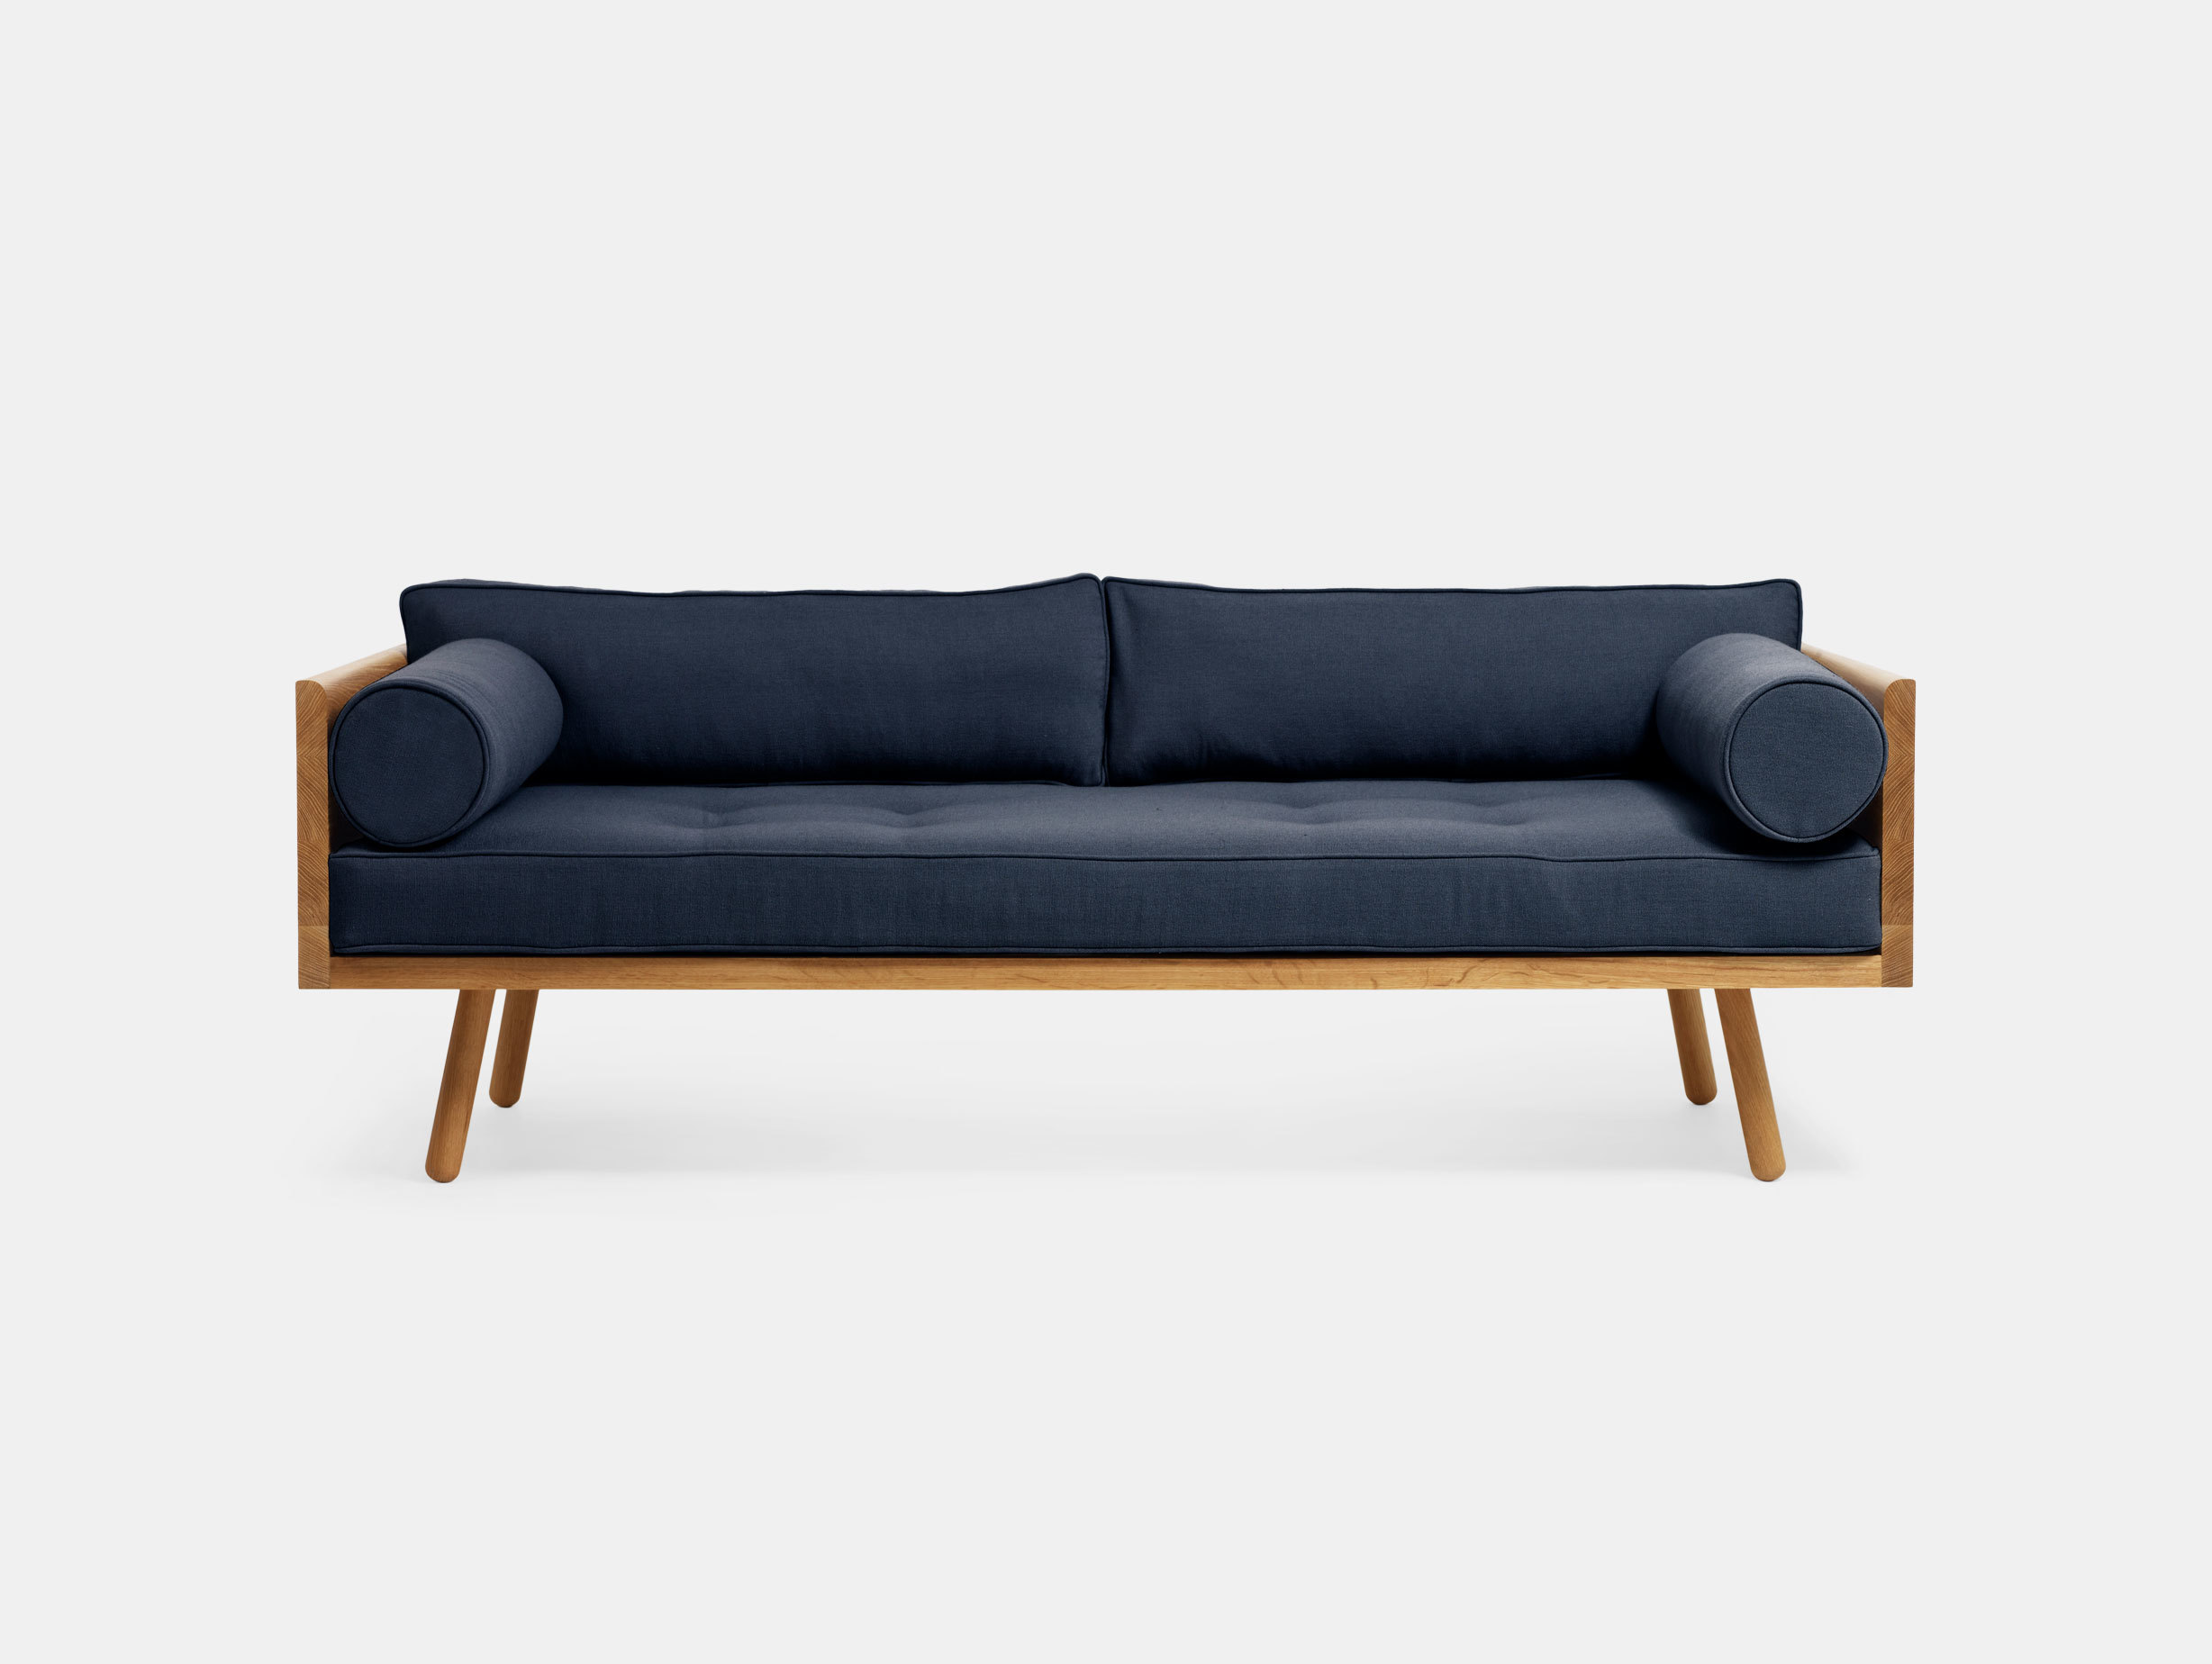 Sofa One image 1